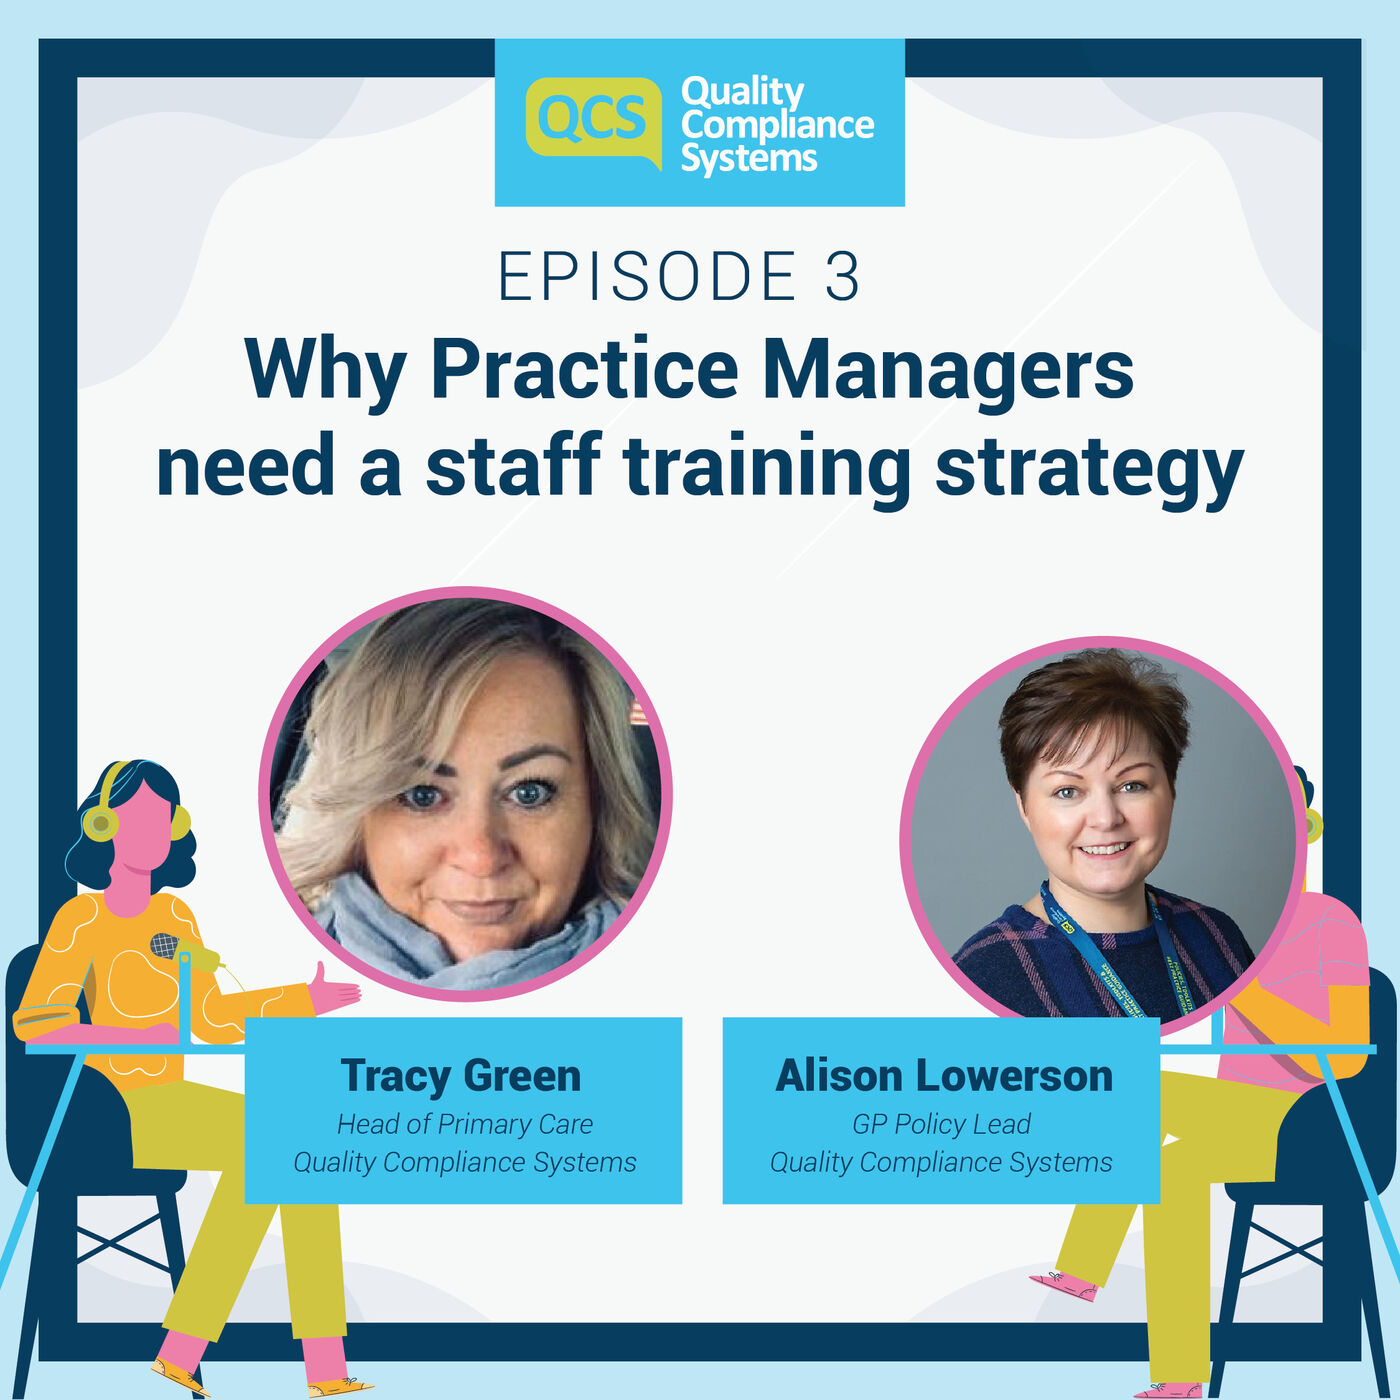 Why Practice Managers need a staff training strategy